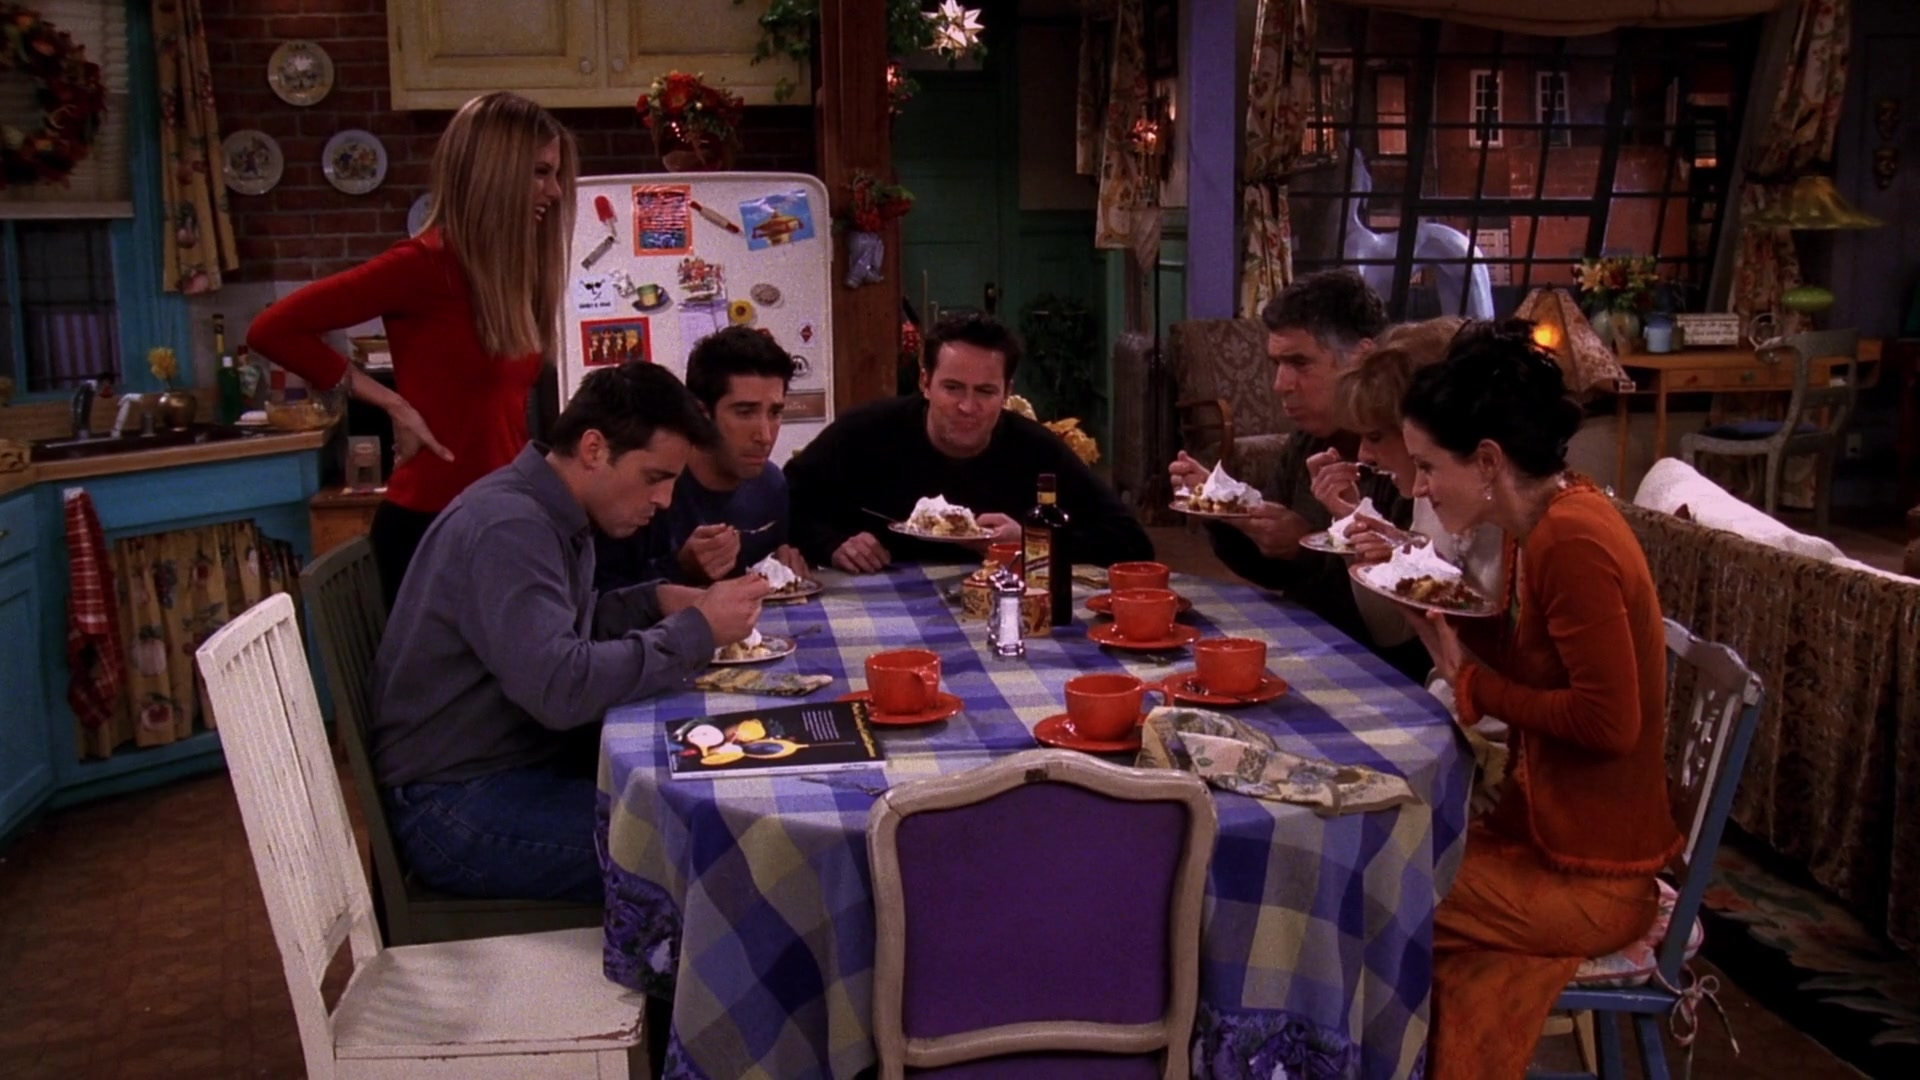 eating rachel's pie on thanksgiving in the friends show